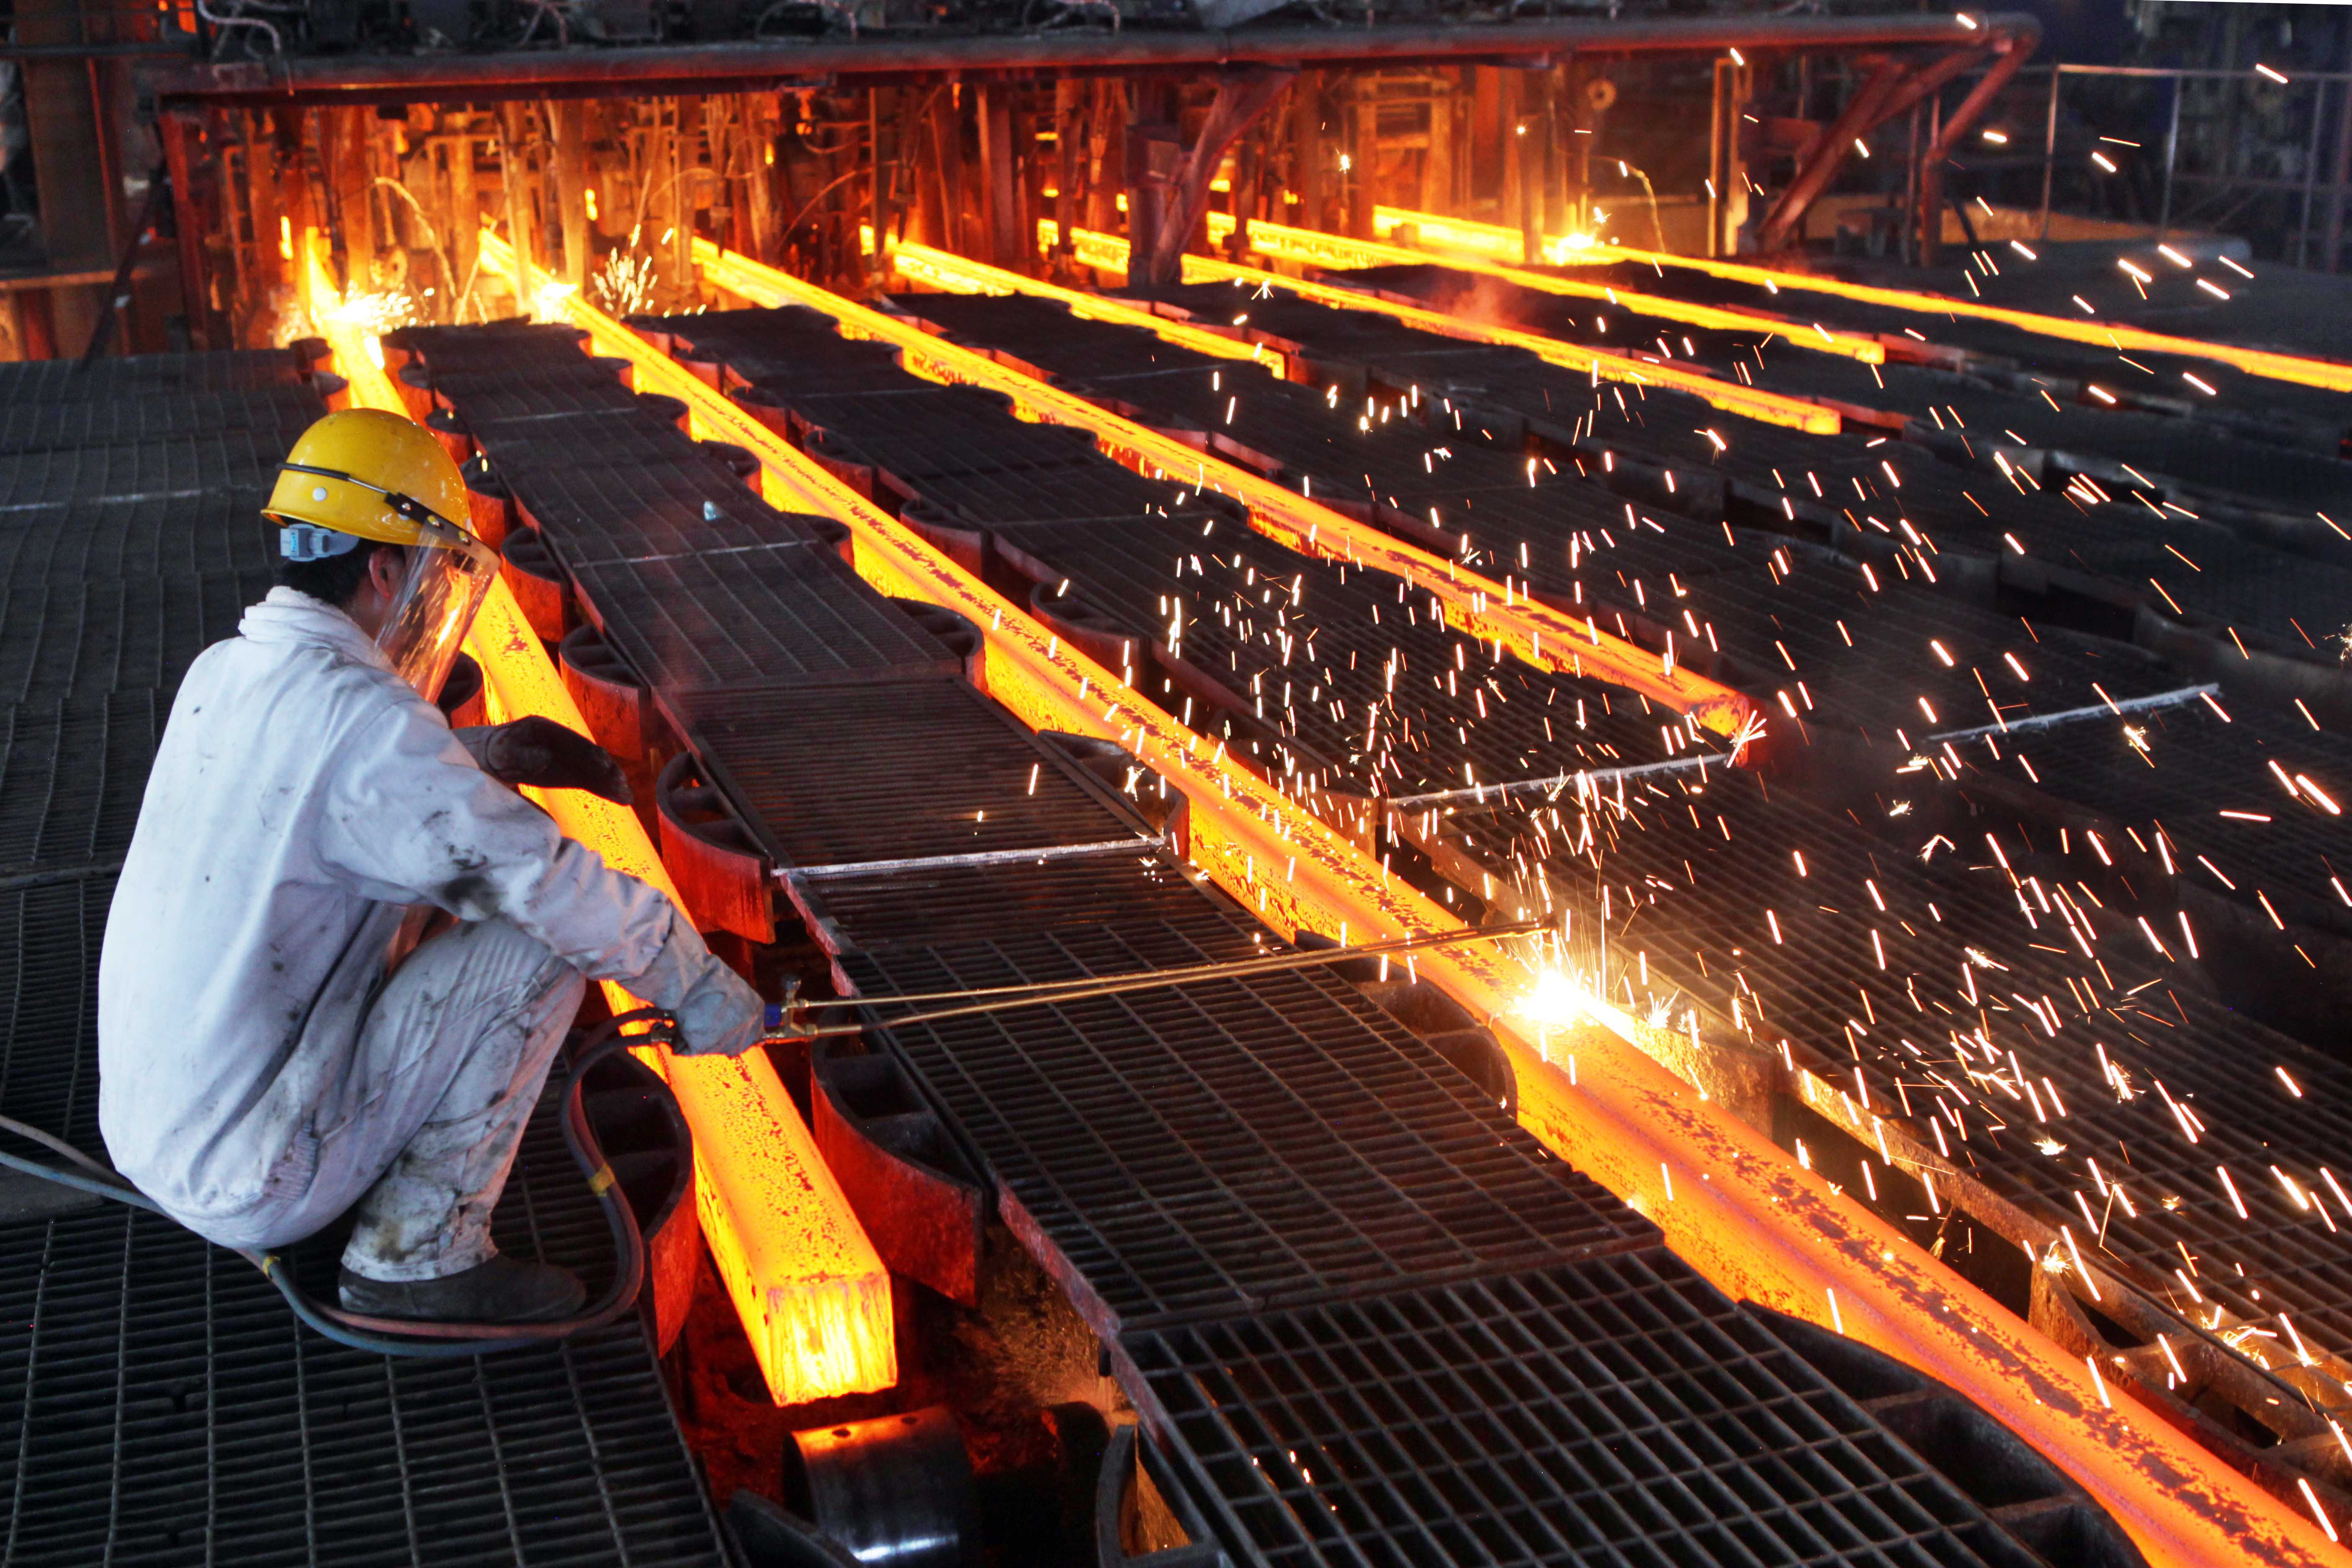 steel industry Autumn 2015 saw a crisis in the uk steel industry with the closure or reduction in capacity at major plants in redcar, scunthorpe, scotland and south wales.